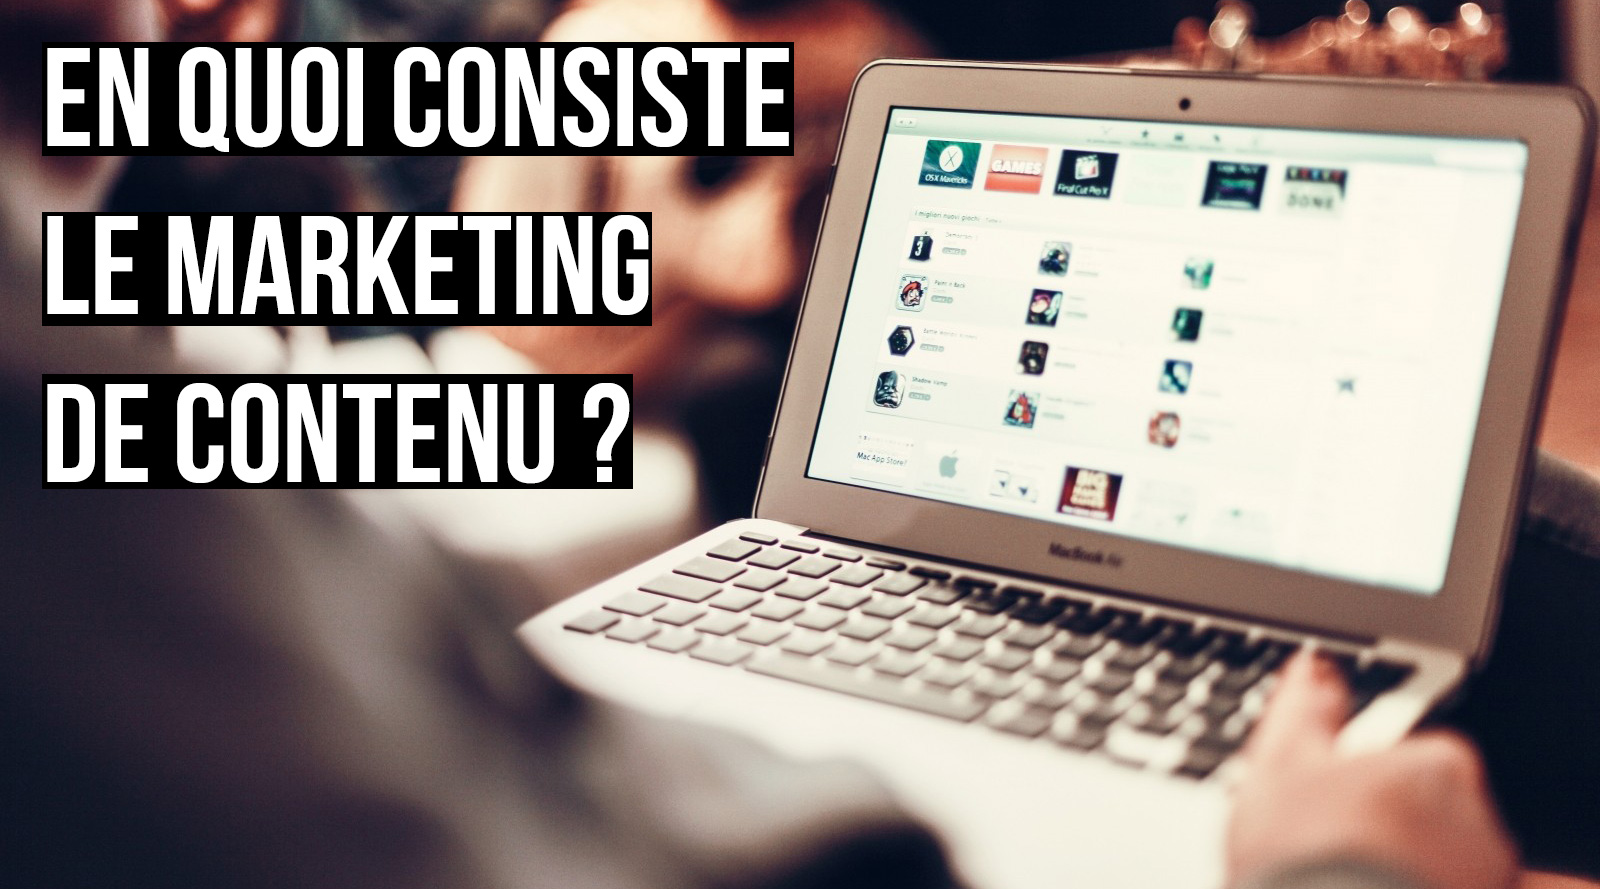 En quoi consiste donc le marketing de contenu